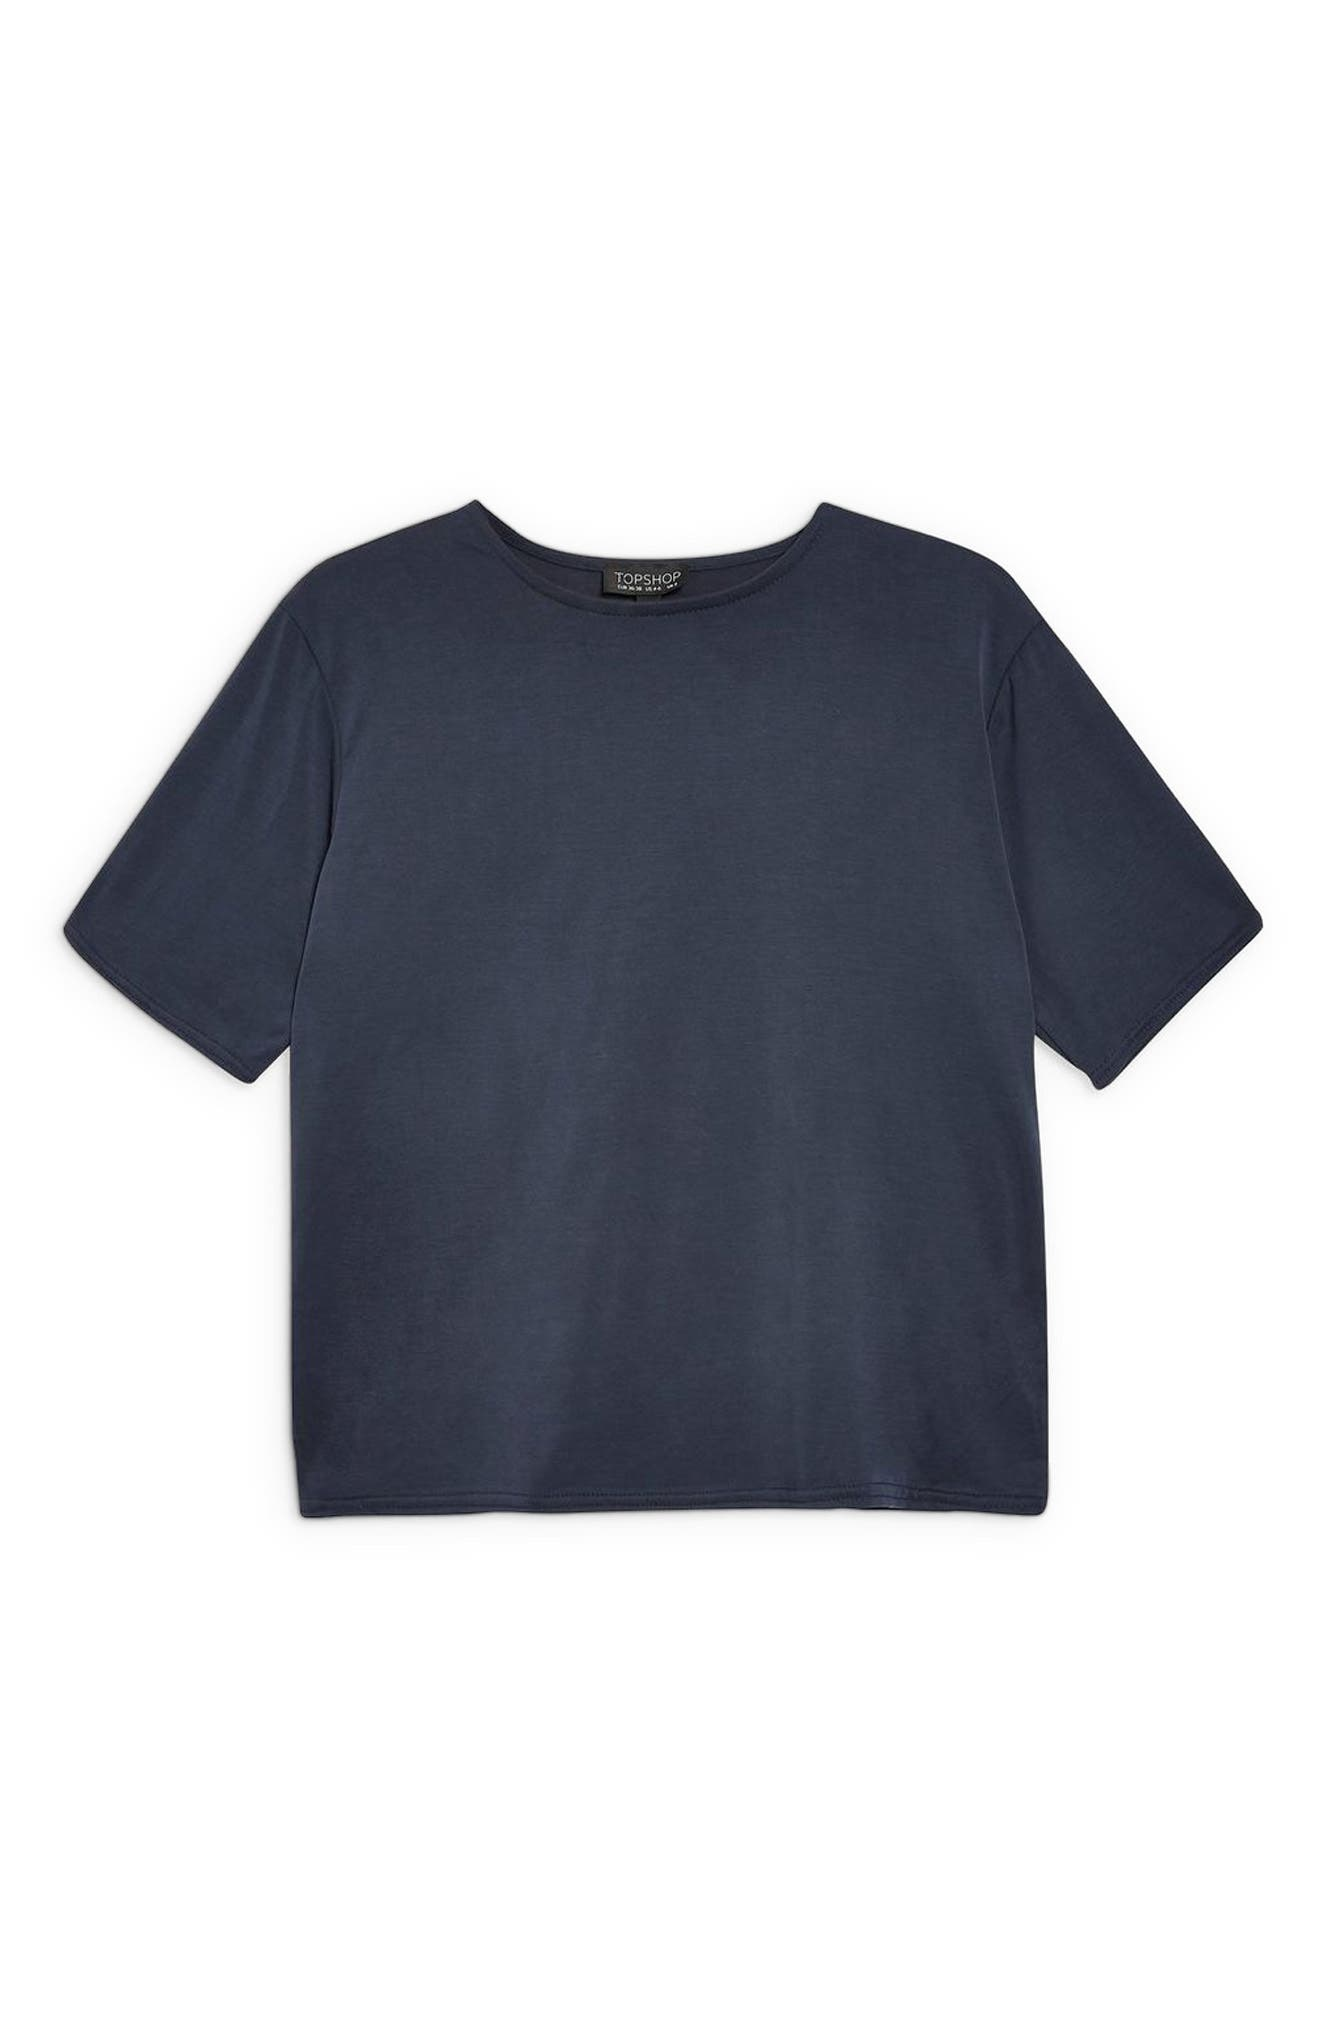 Lounge Tee,                             Alternate thumbnail 3, color,                             NAVY BLUE